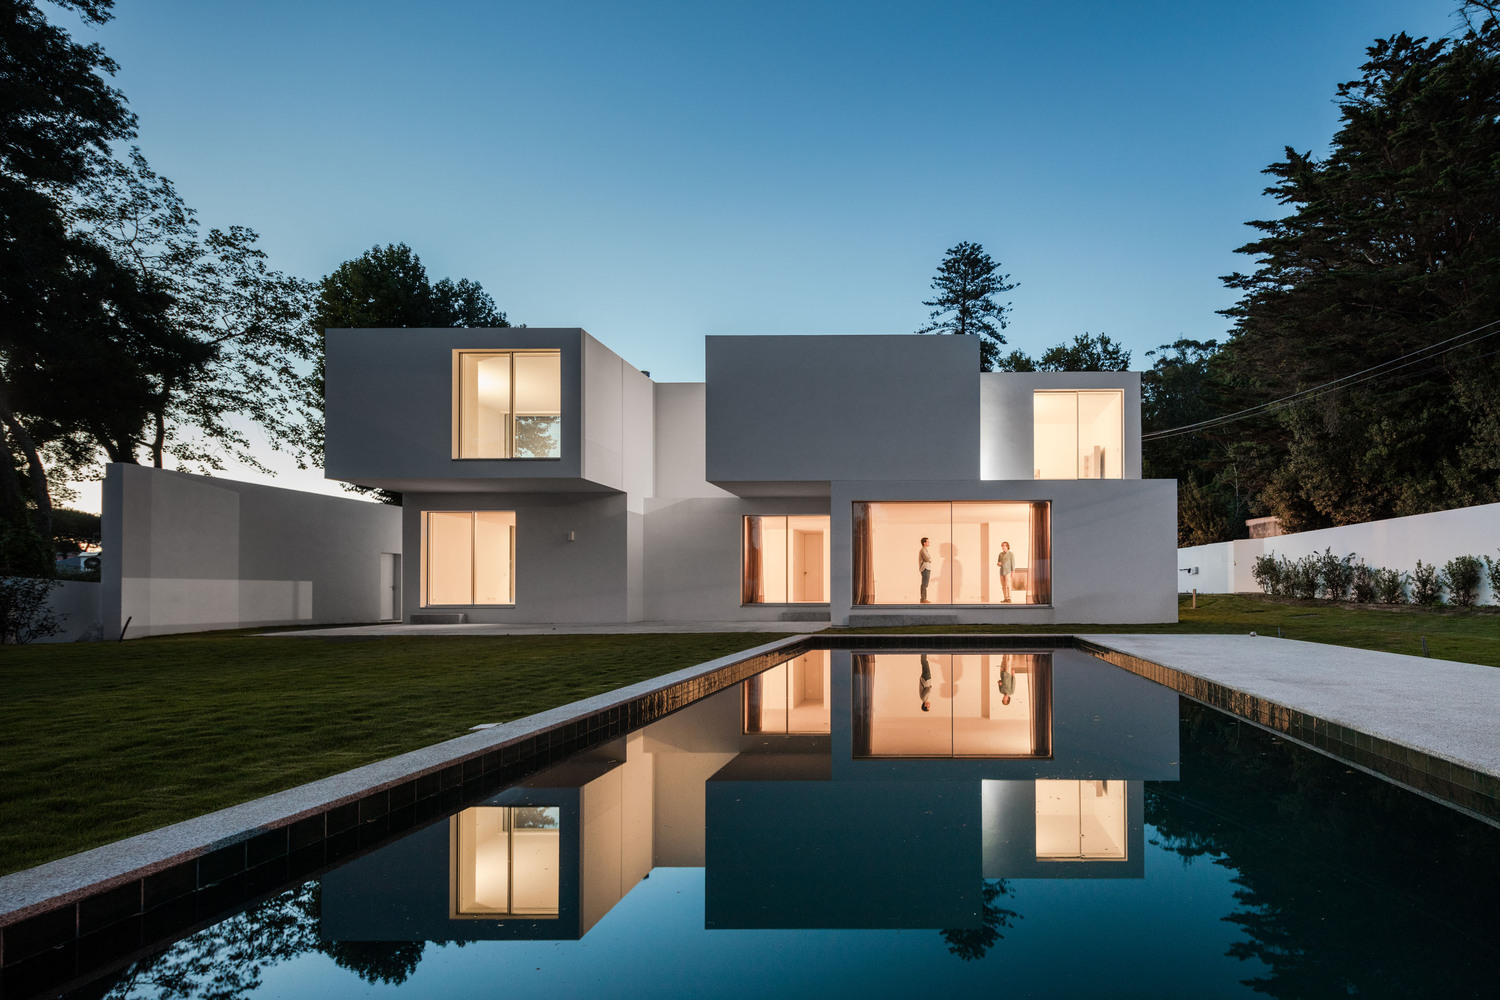 A Stack Of Blocks The House Mr By 236 Arquitectos In